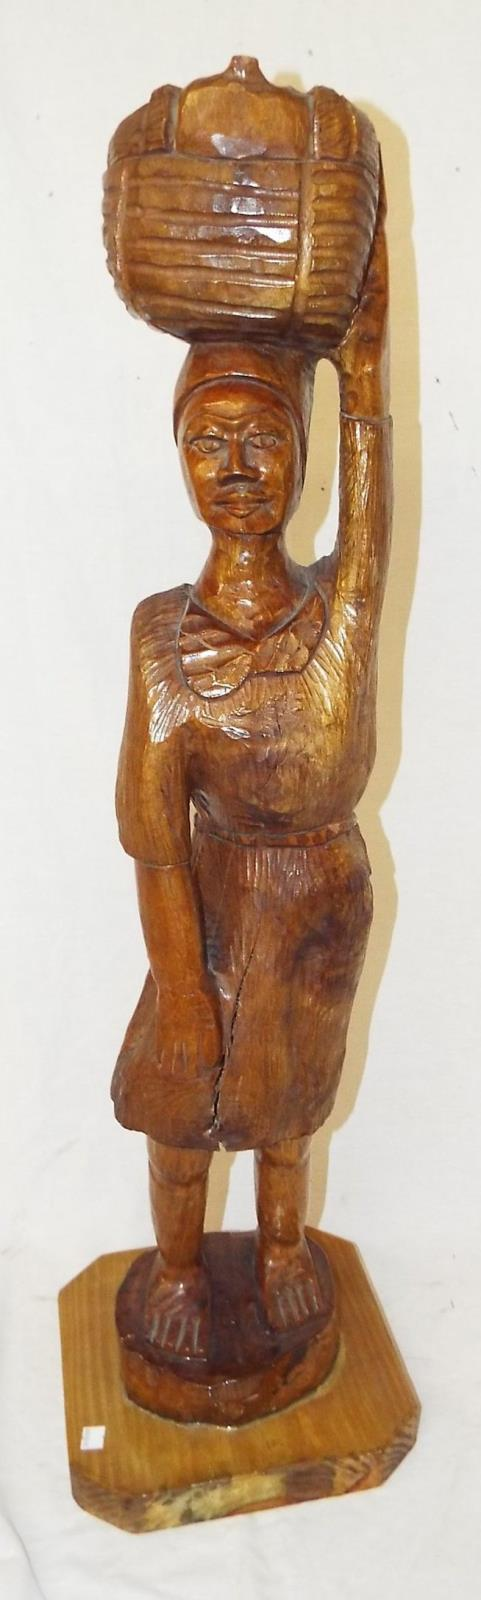 Carved Wooden Sculpture Of African Lady